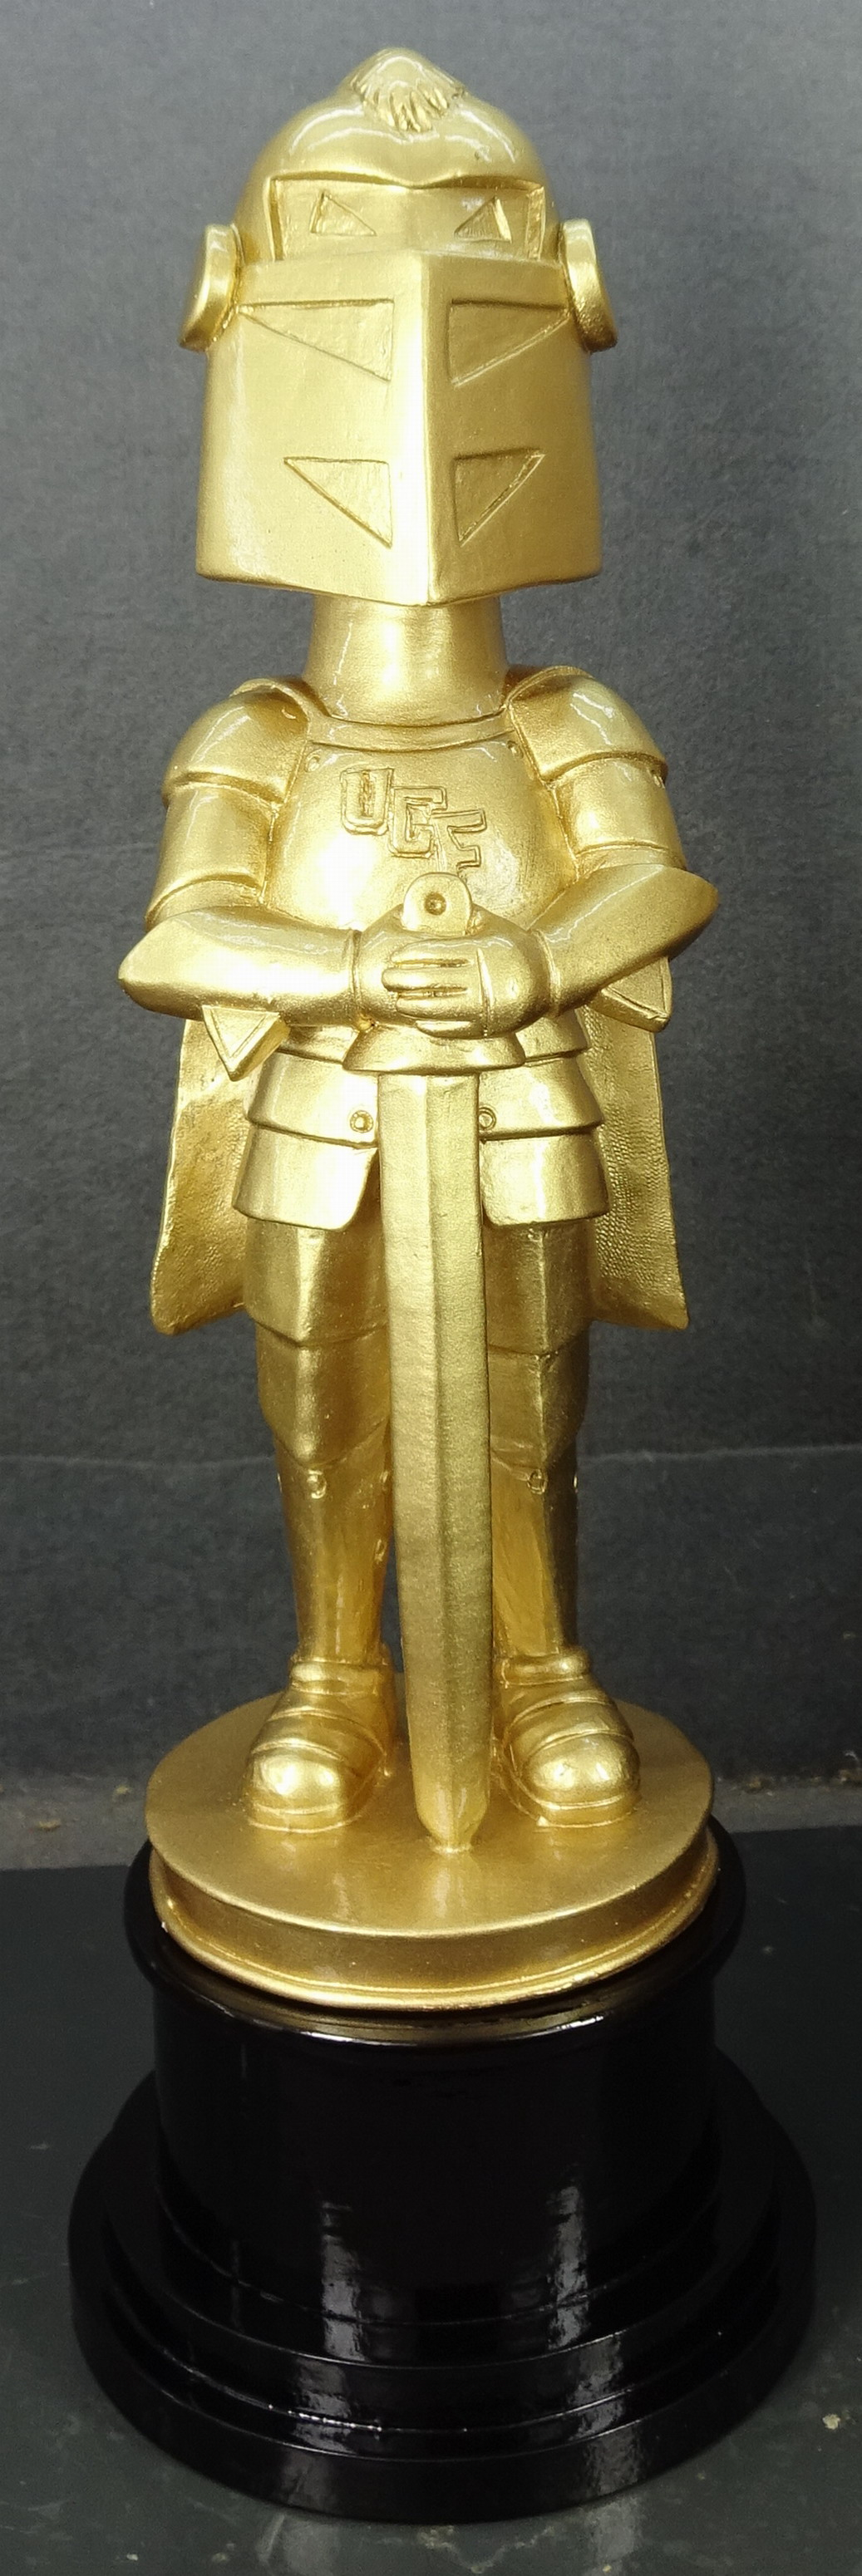 University of Central Florida - Knightro Award 113512, 13in (2).jpg